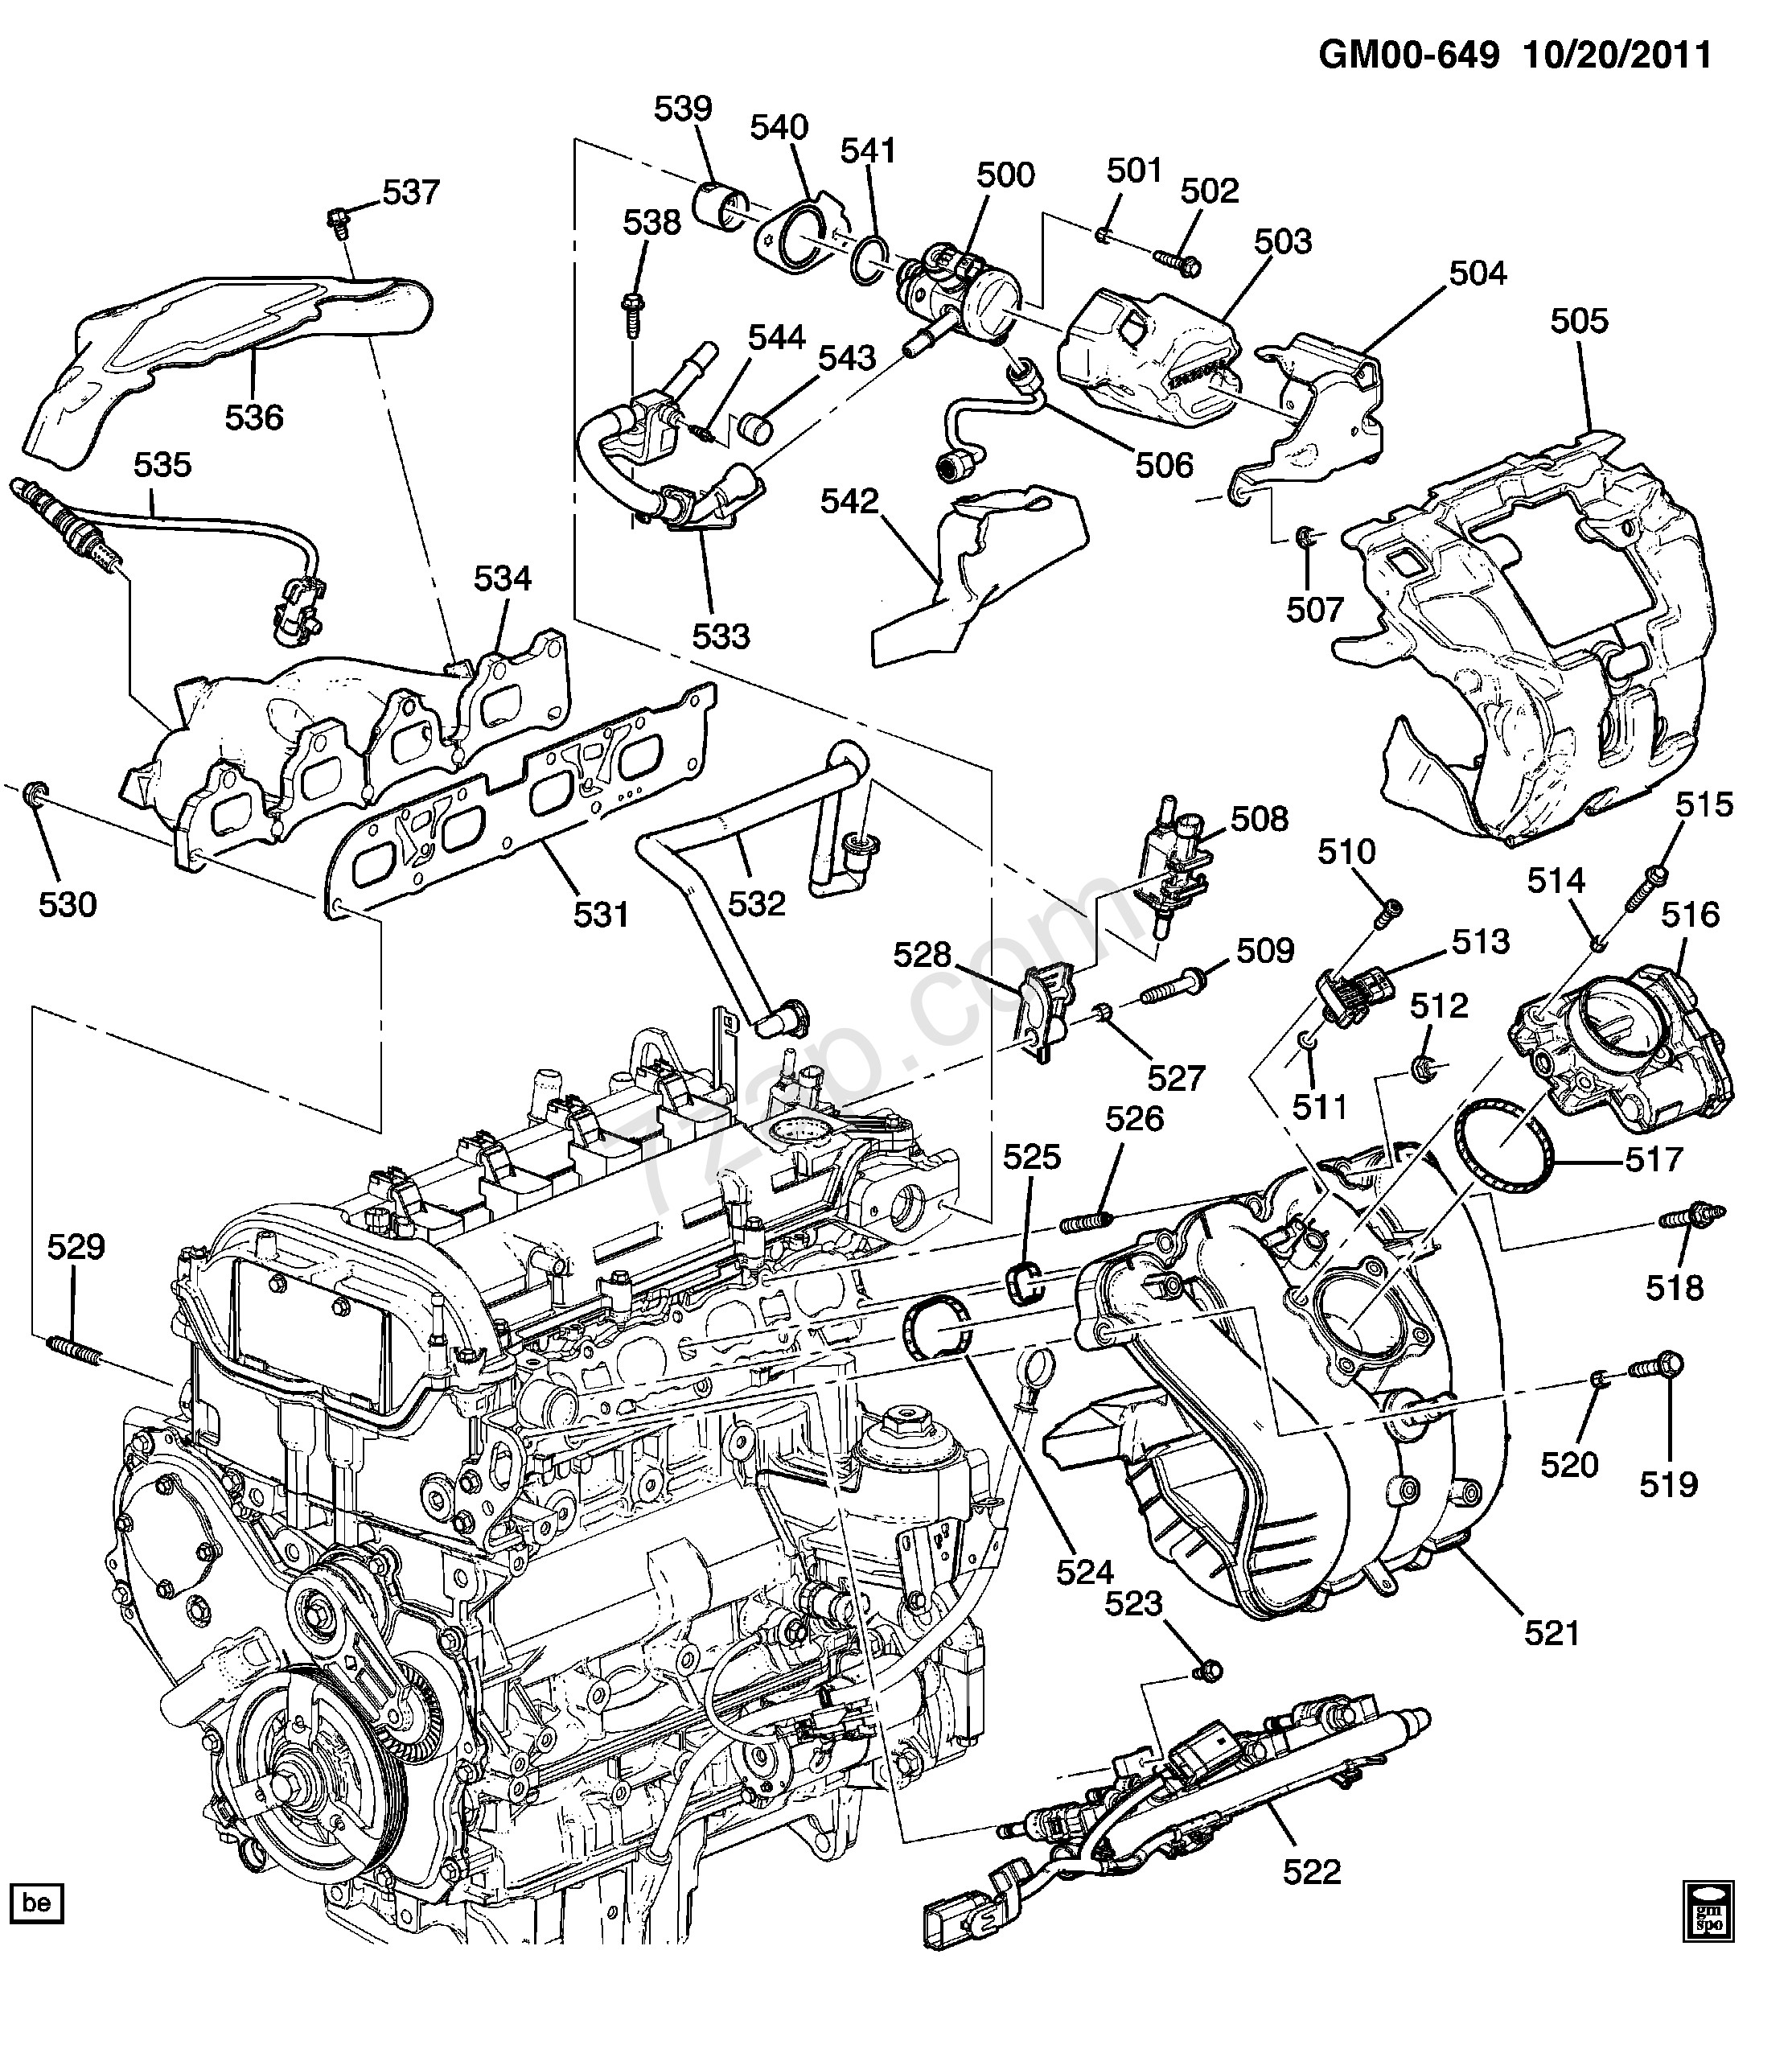 Diagram 1998 Chevy 350 Motor Data Wiring Diagrams 1989 Engine Parts Schematic U2022 Rh Detox Design Co Vacuum Hose